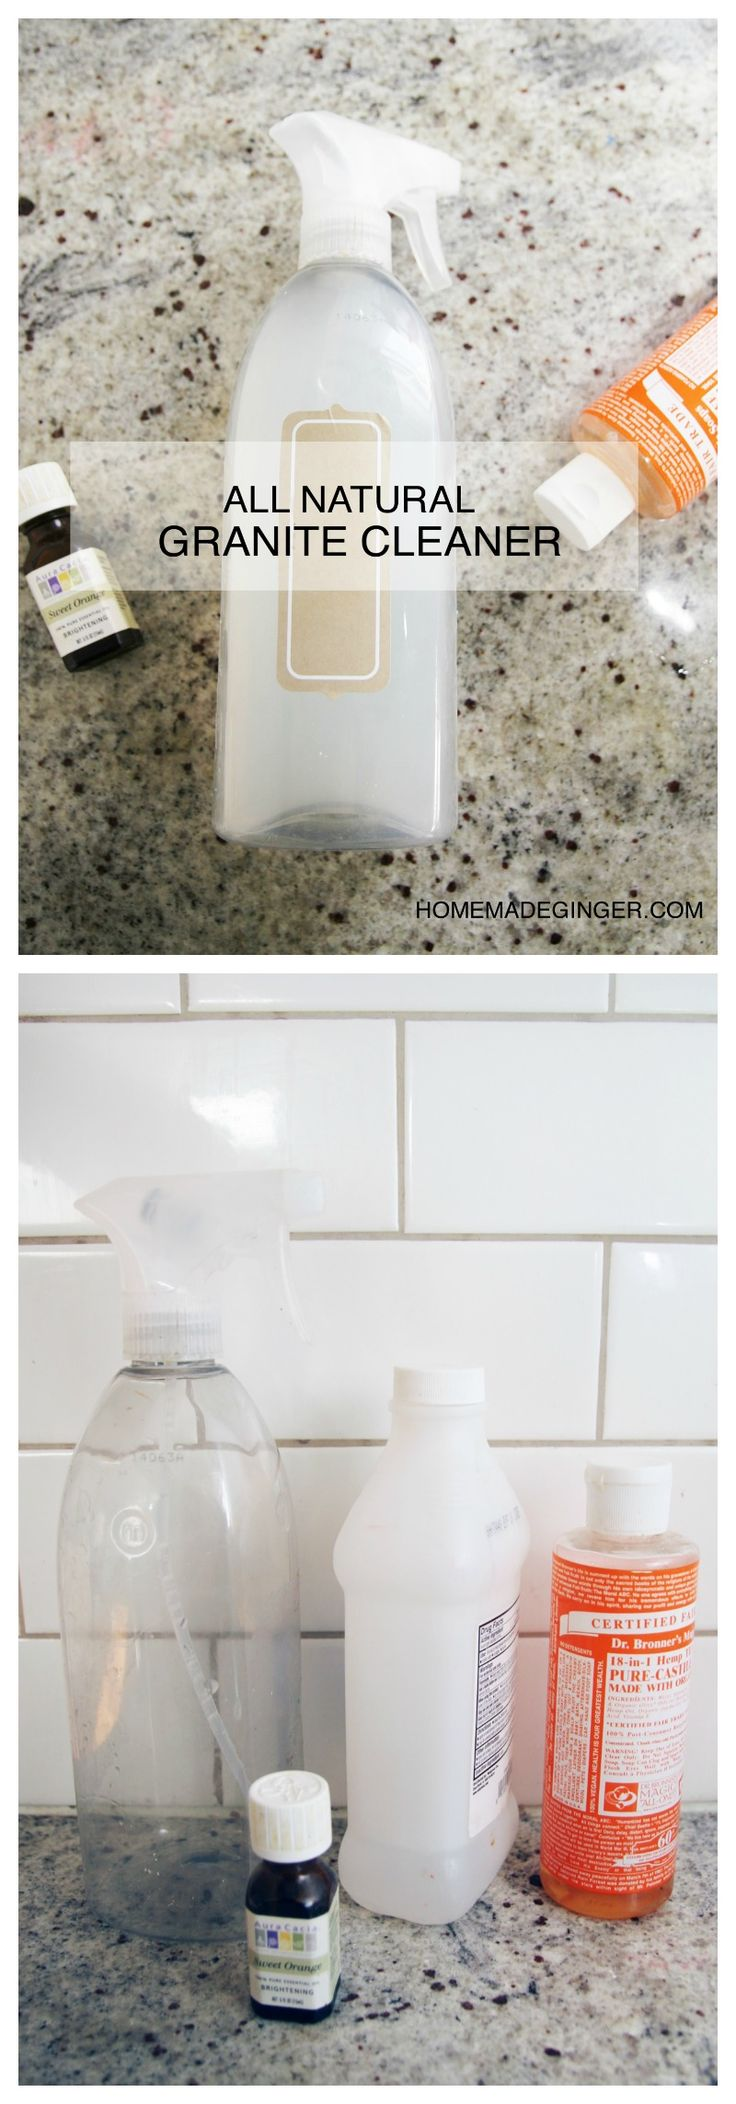 199 best CLEAN & ORGANIZE images on Pinterest | Households ...